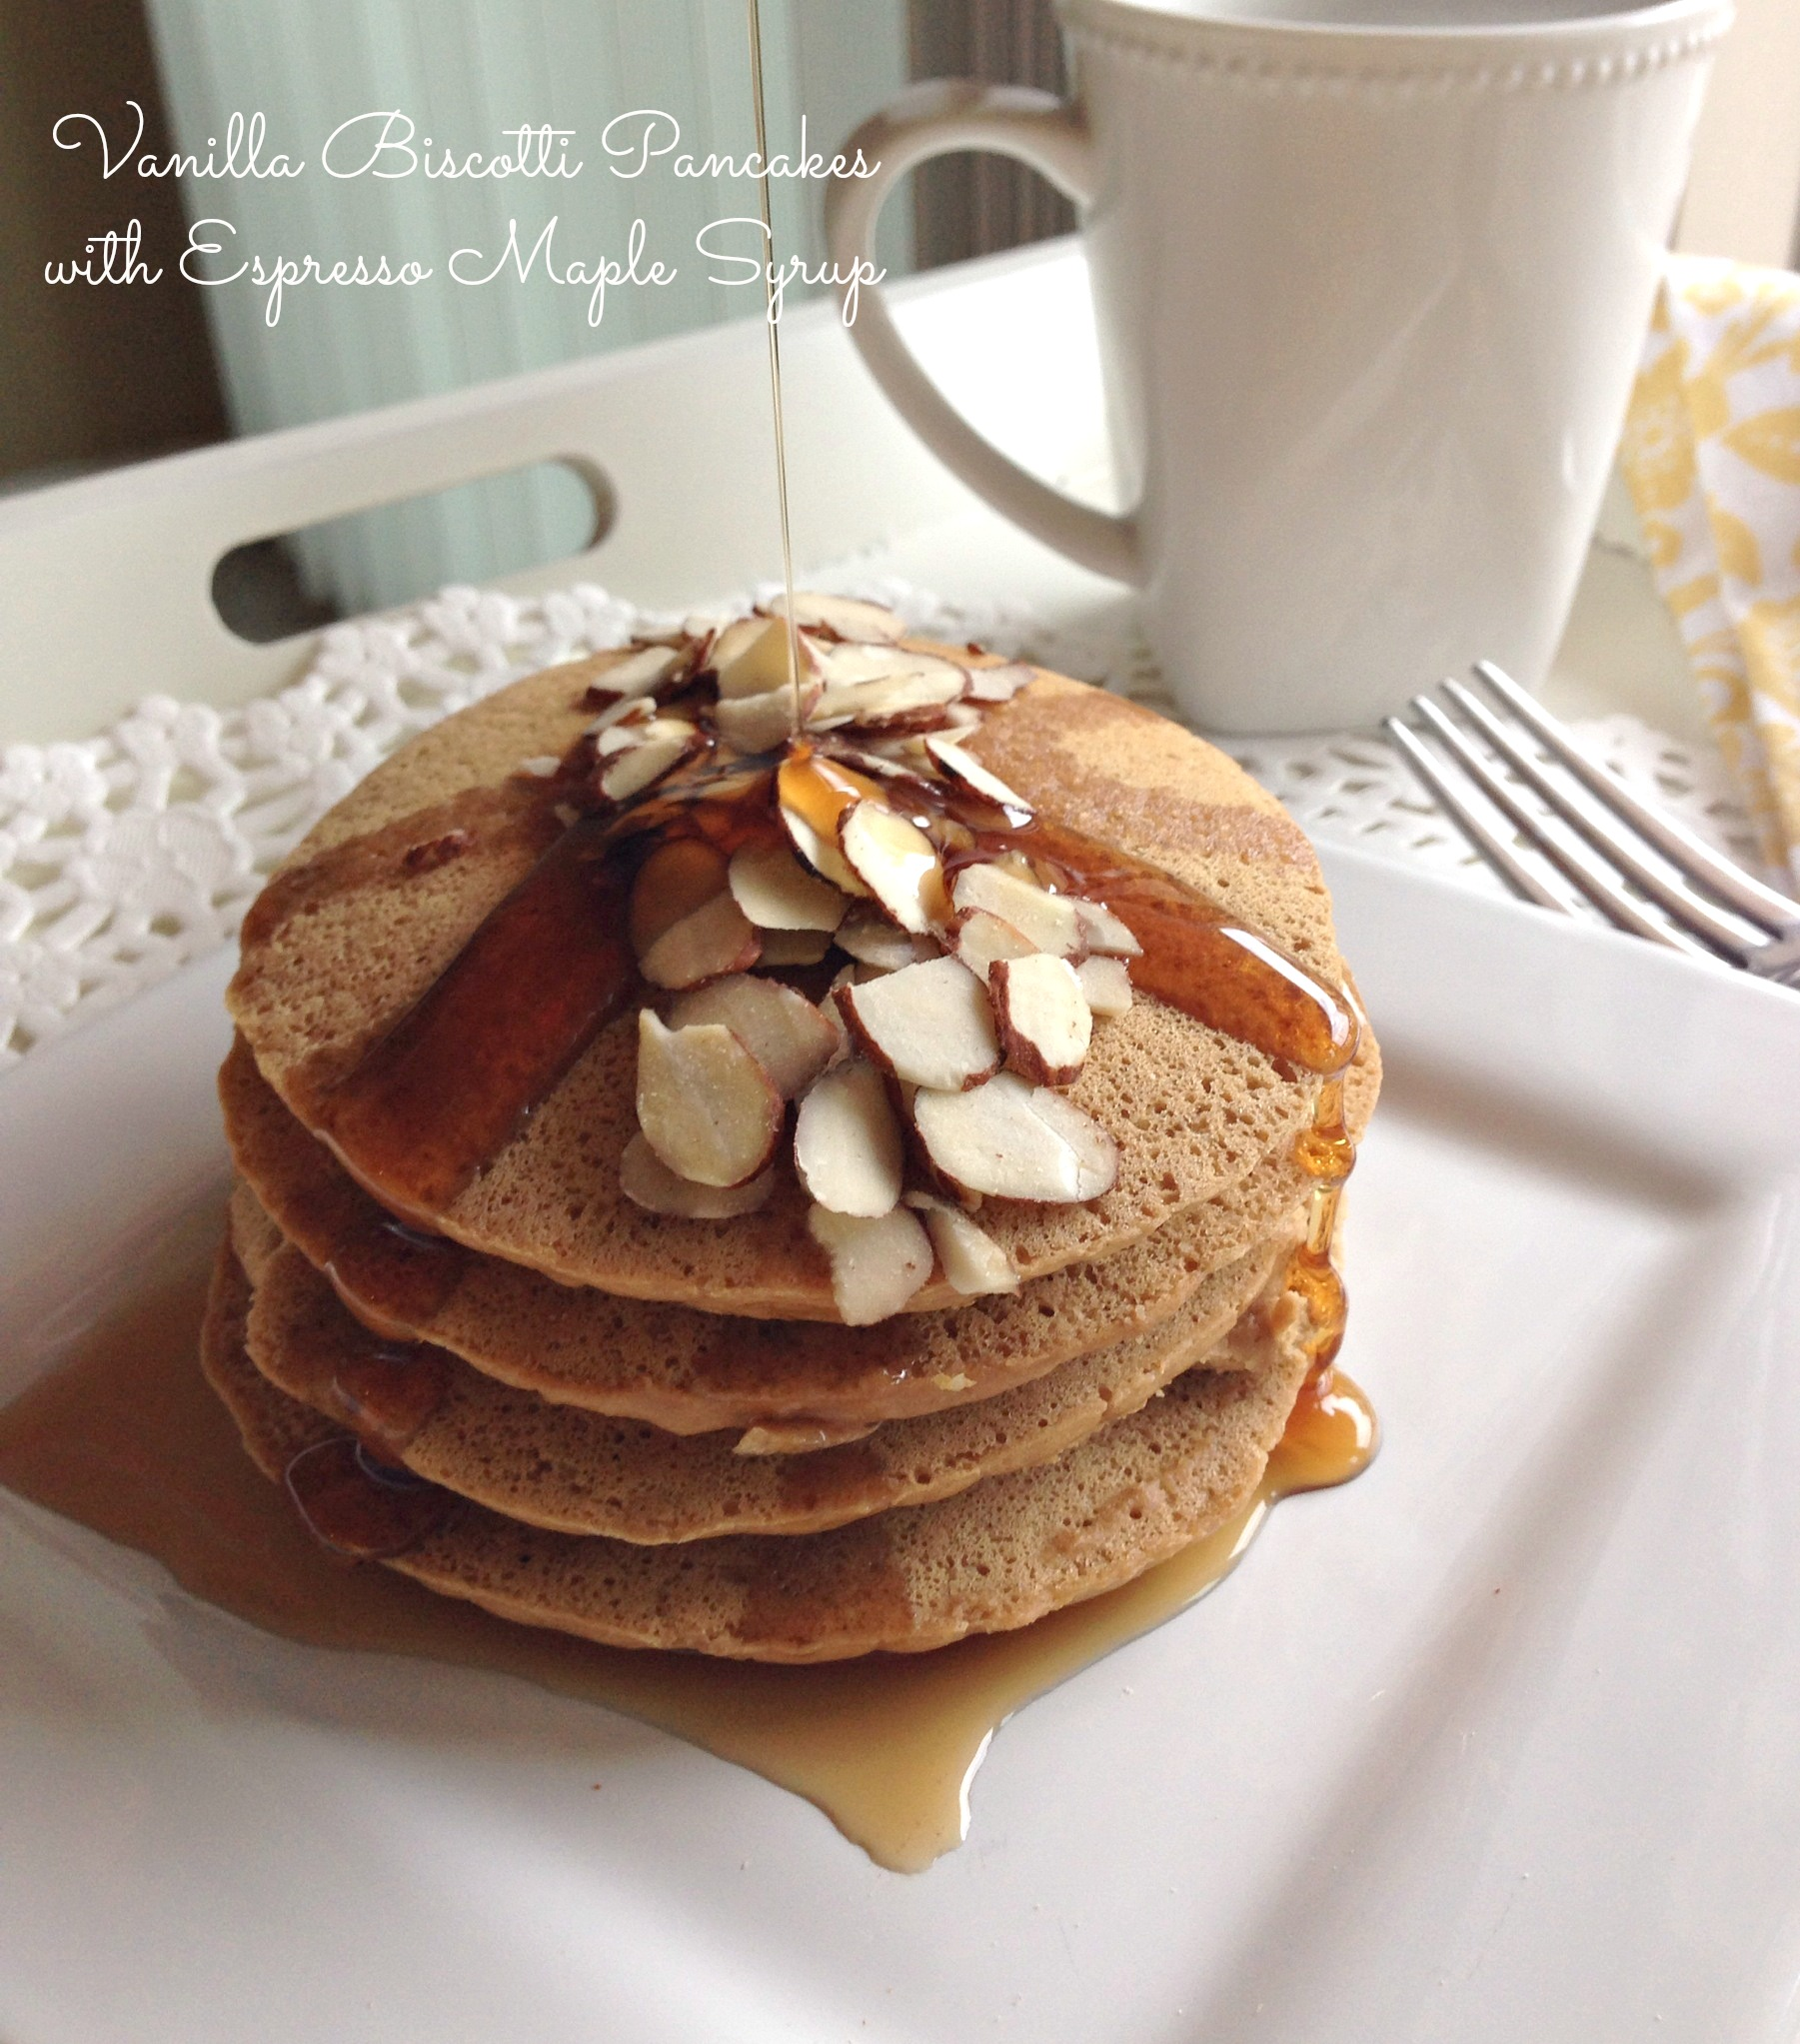 Vanilla Biscotti Protein Pancakes with Espresso Maple Syrup